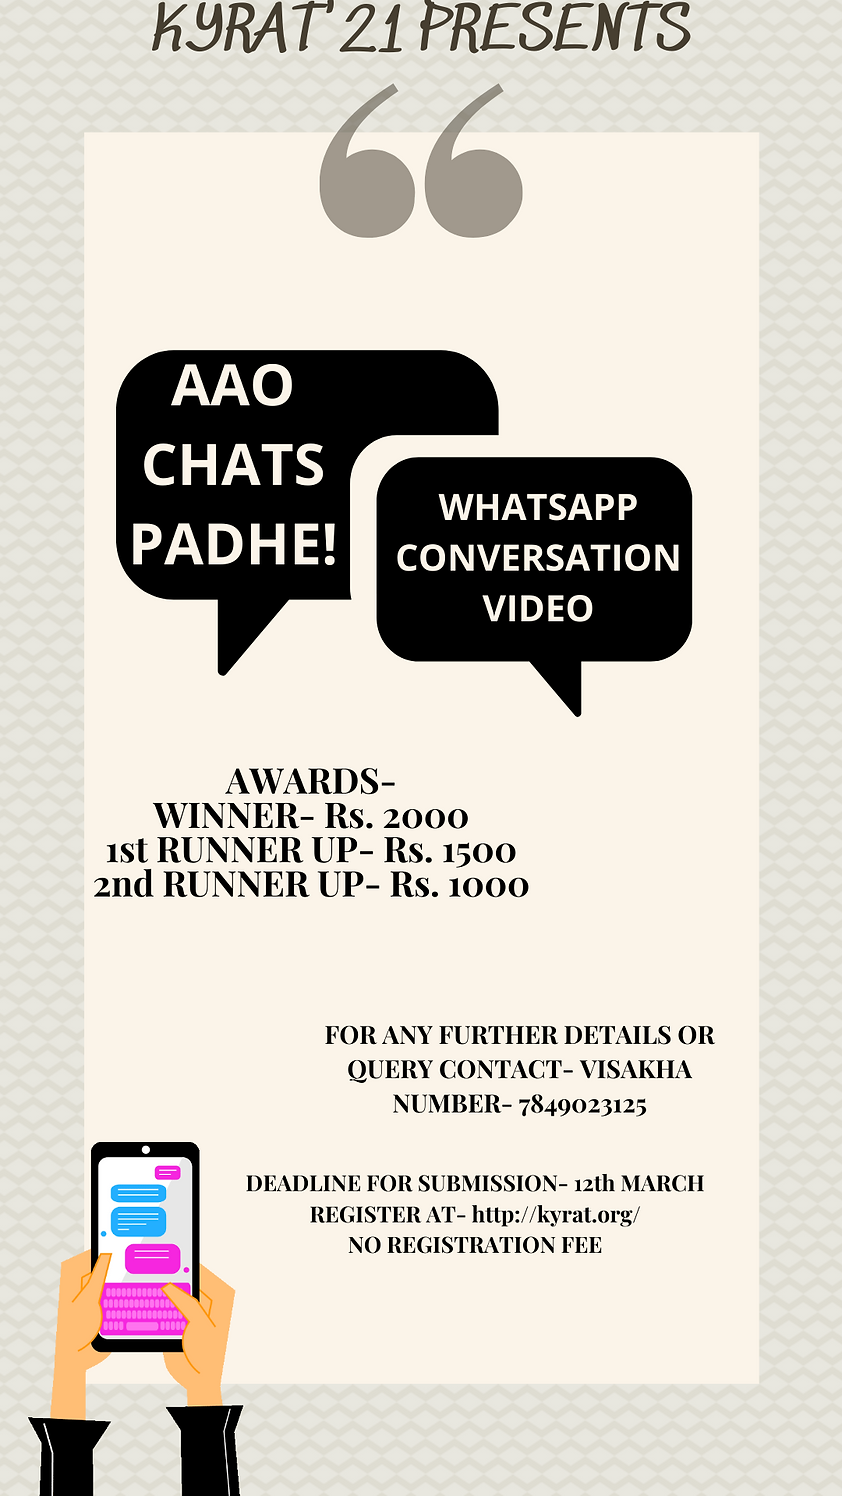 AAO CHATS PADHE FINAL PNG.png